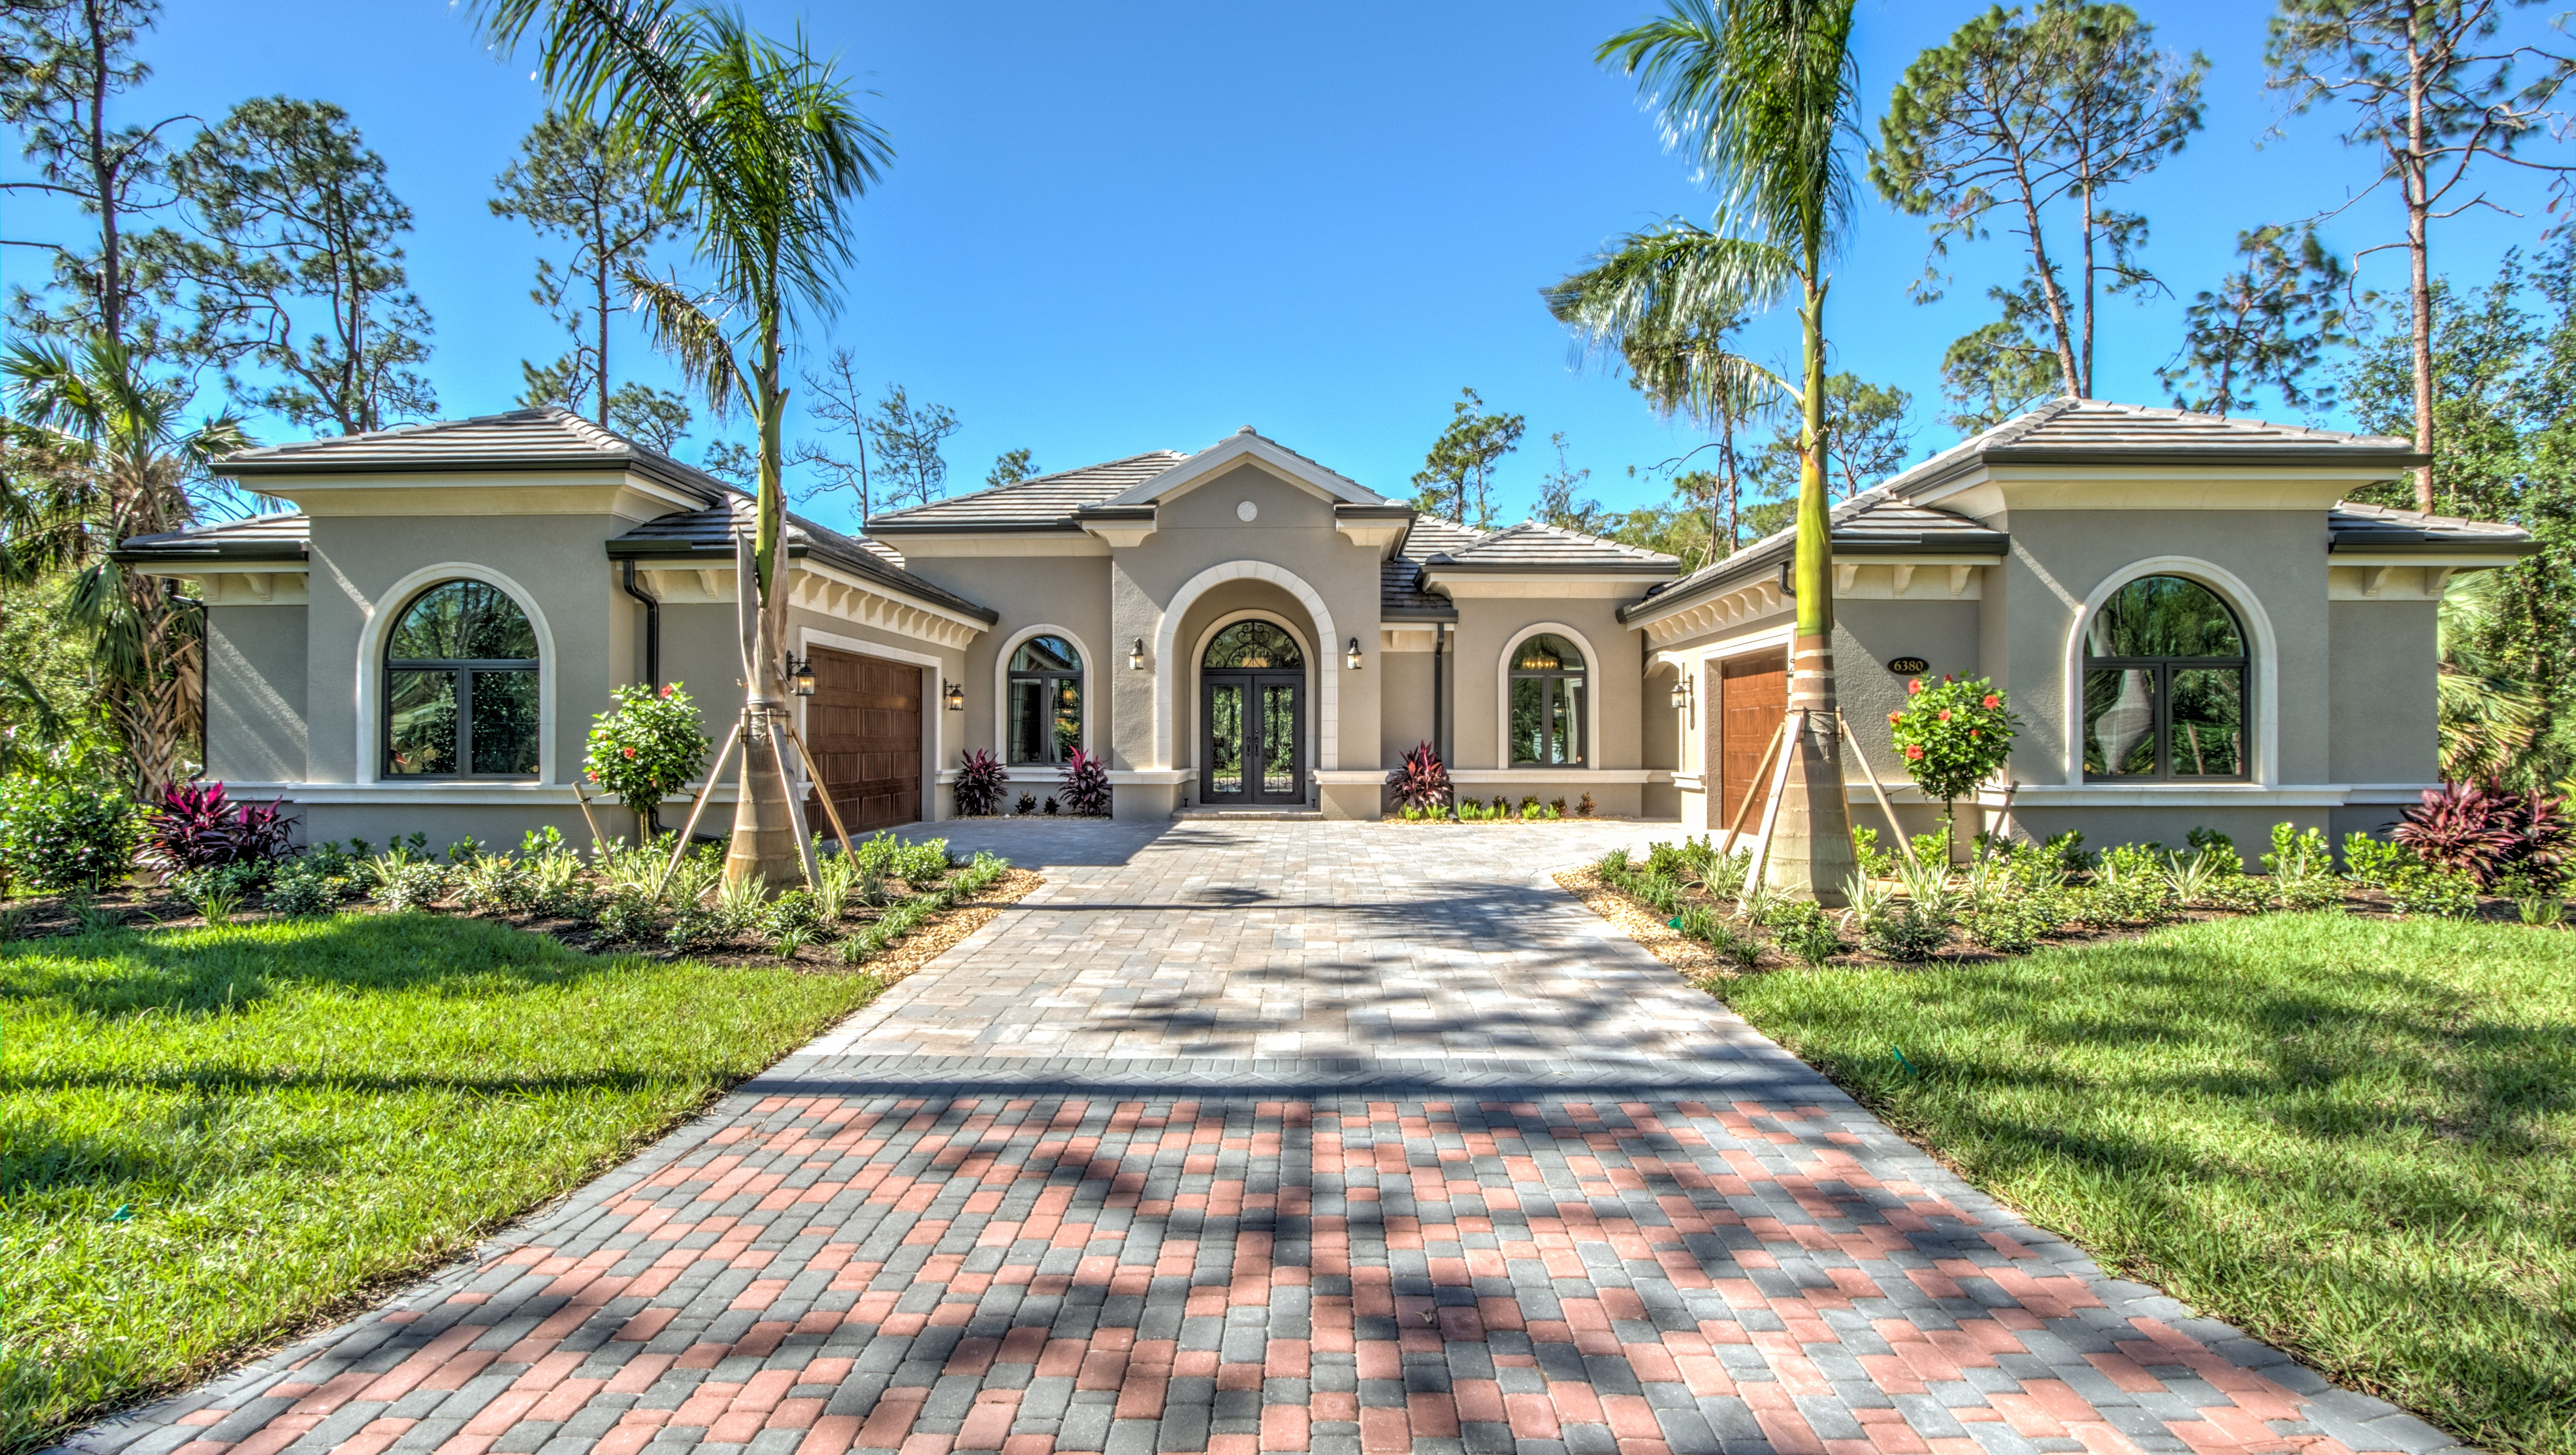 Emerald Homes Completes Ventalo Model In Quail West